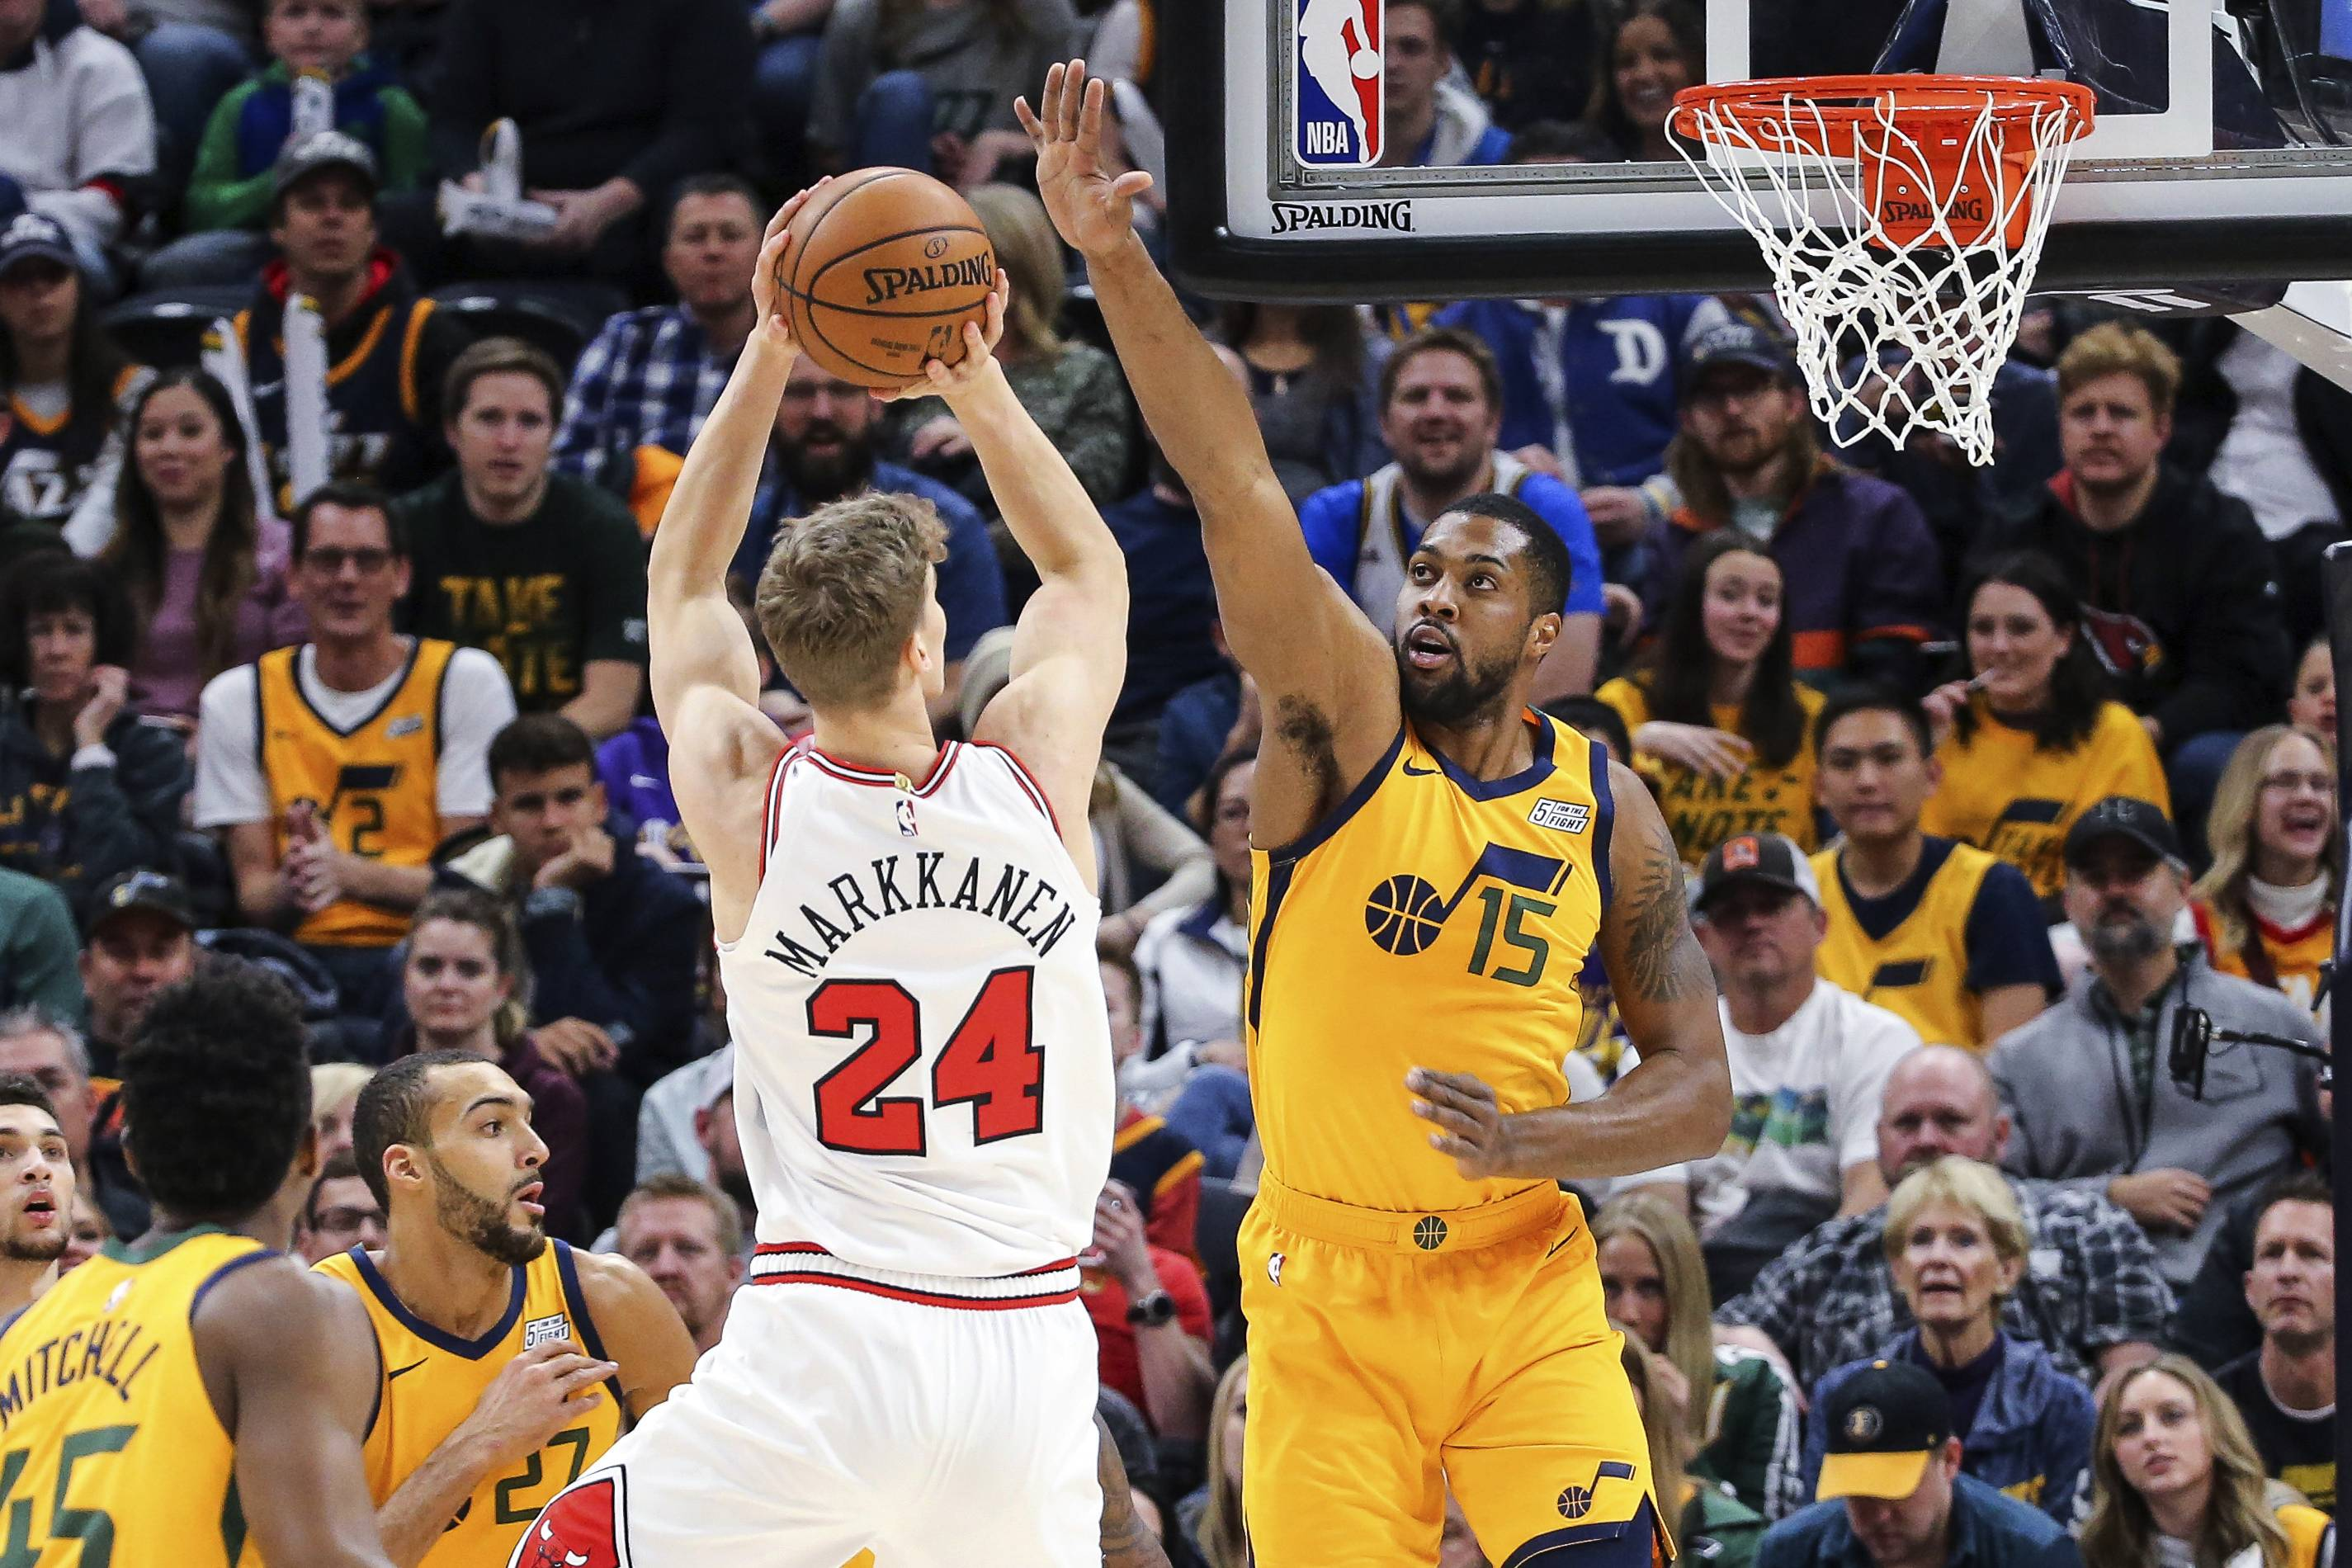 Chicago Bulls forward Lauri Markkanen (24) shoots over Utah Jazz forward Derrick Favors (15) during the first quarter of an NBA basketball game Saturday, Jan. 12, 2019, in Salt Lake City.